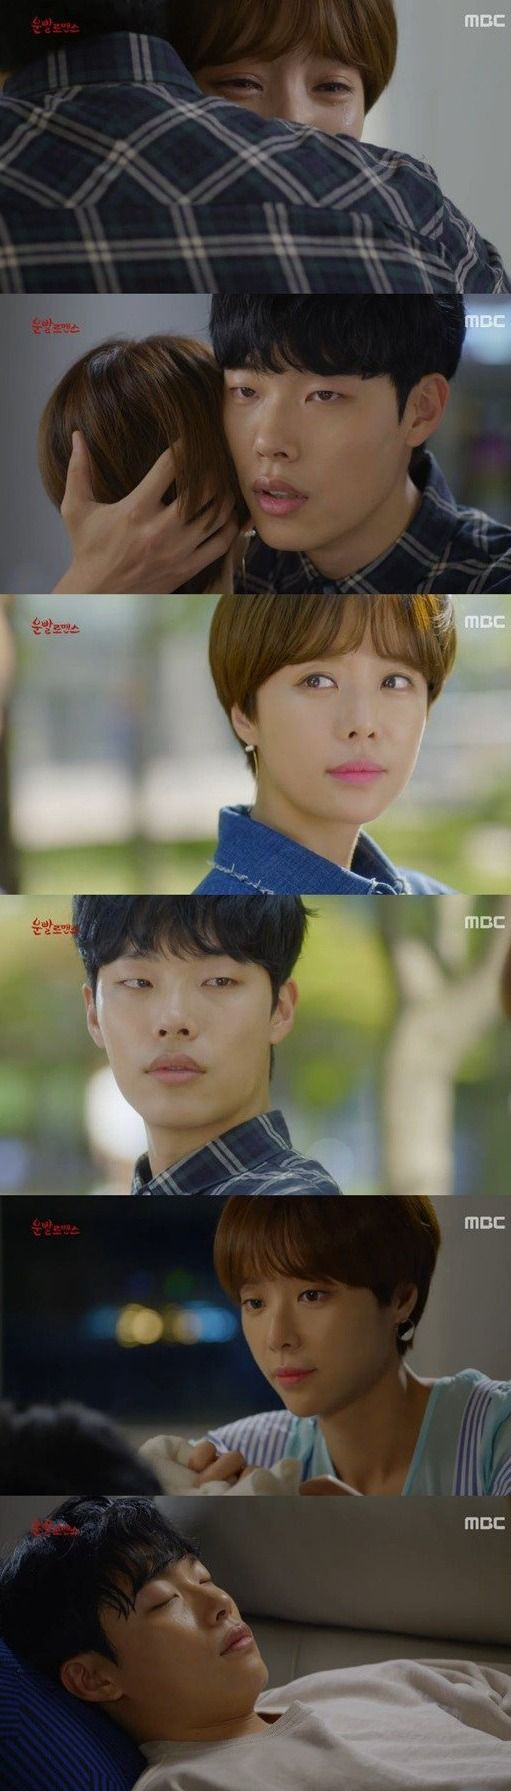 Added episodes 9 and 10 captures for the Korean drama 'Lucky Romance'.